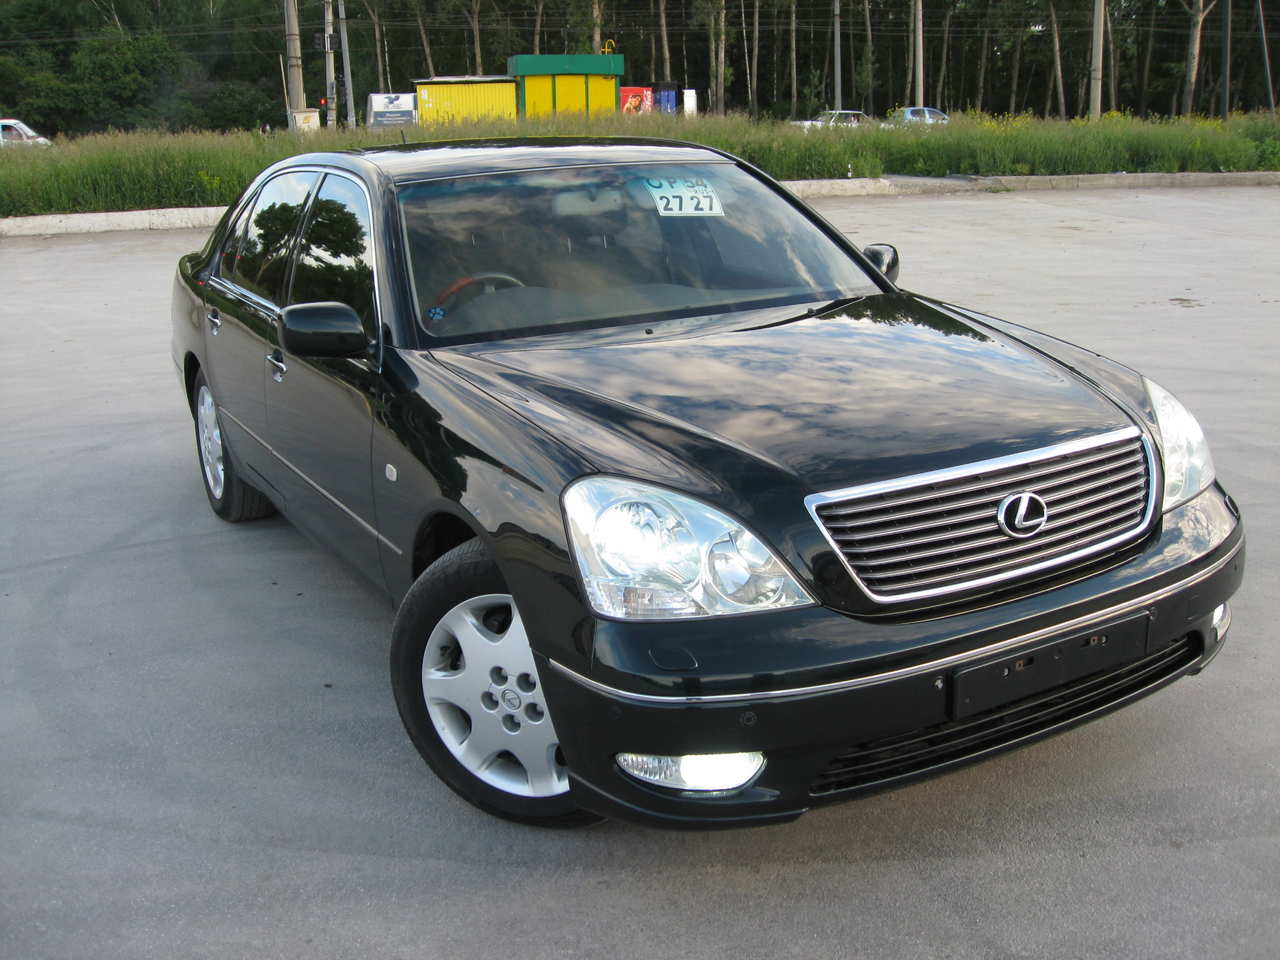 2000 lexus ls430 pictures gasoline fr or rr automatic for sale. Black Bedroom Furniture Sets. Home Design Ideas